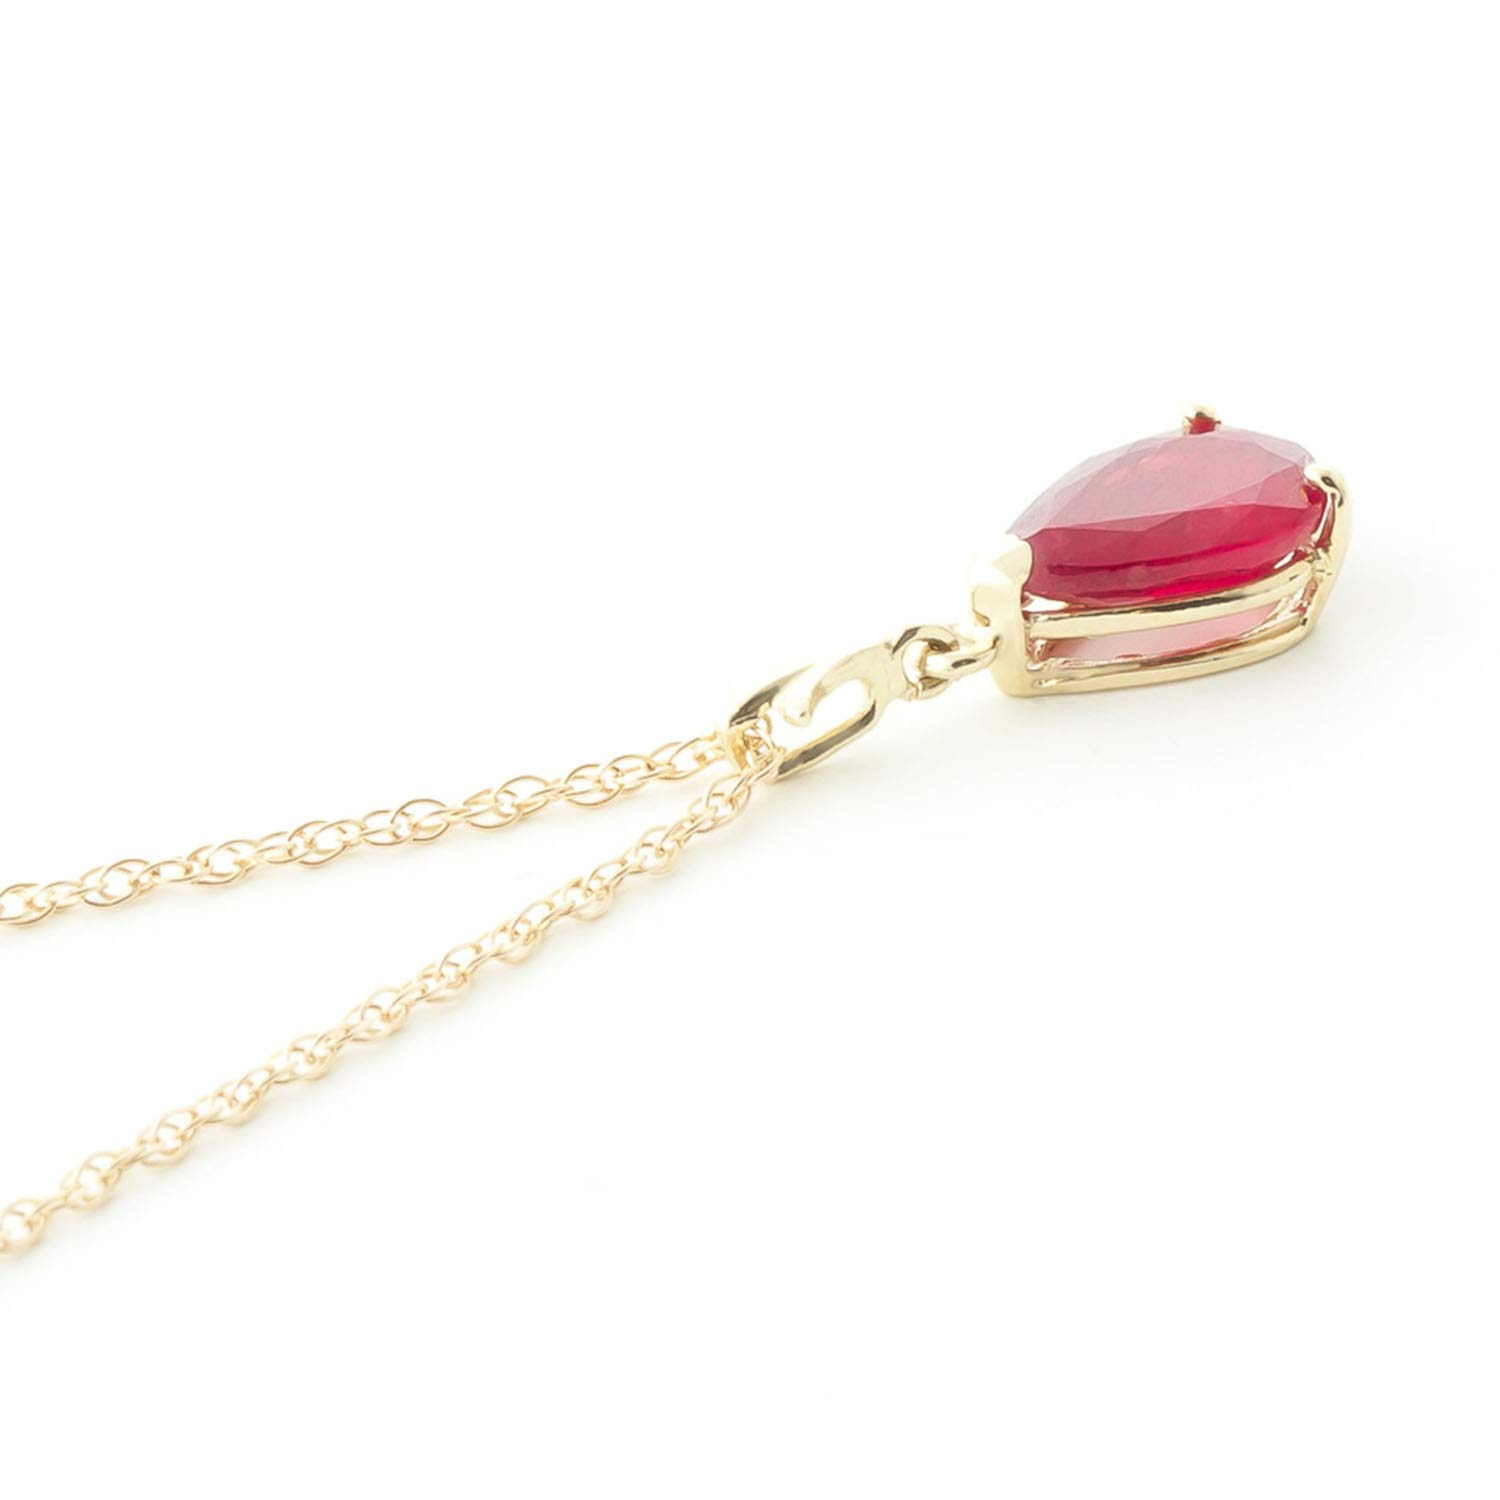 Galaxy Gold 1.75 Carat 14k 18'' Solid Gold Natural Pear-shaped Ruby Drop Pendant Necklace by Galaxy Gold (Image #3)